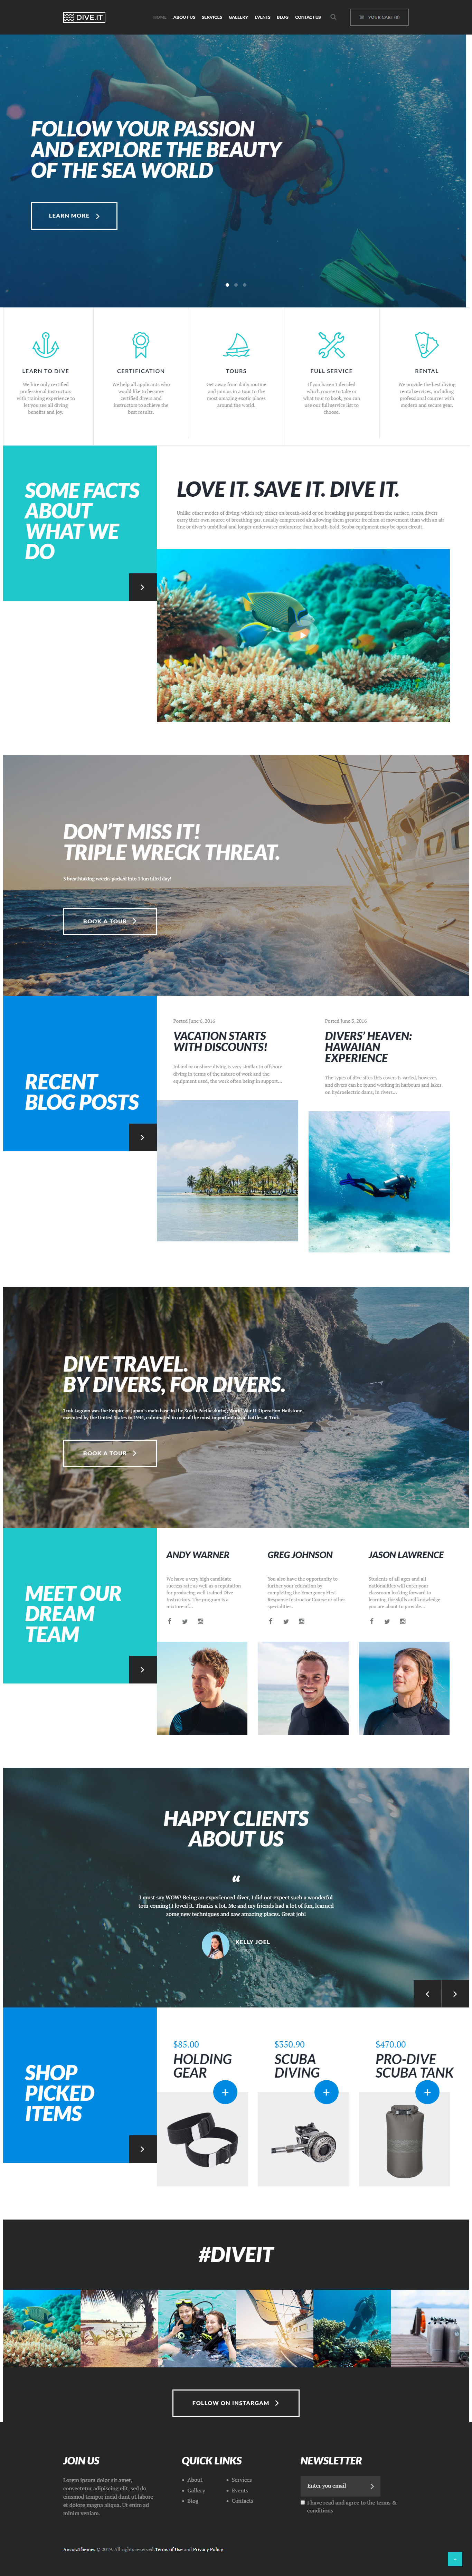 DiveIt - Best Premium Outdoor Activities WordPress Theme